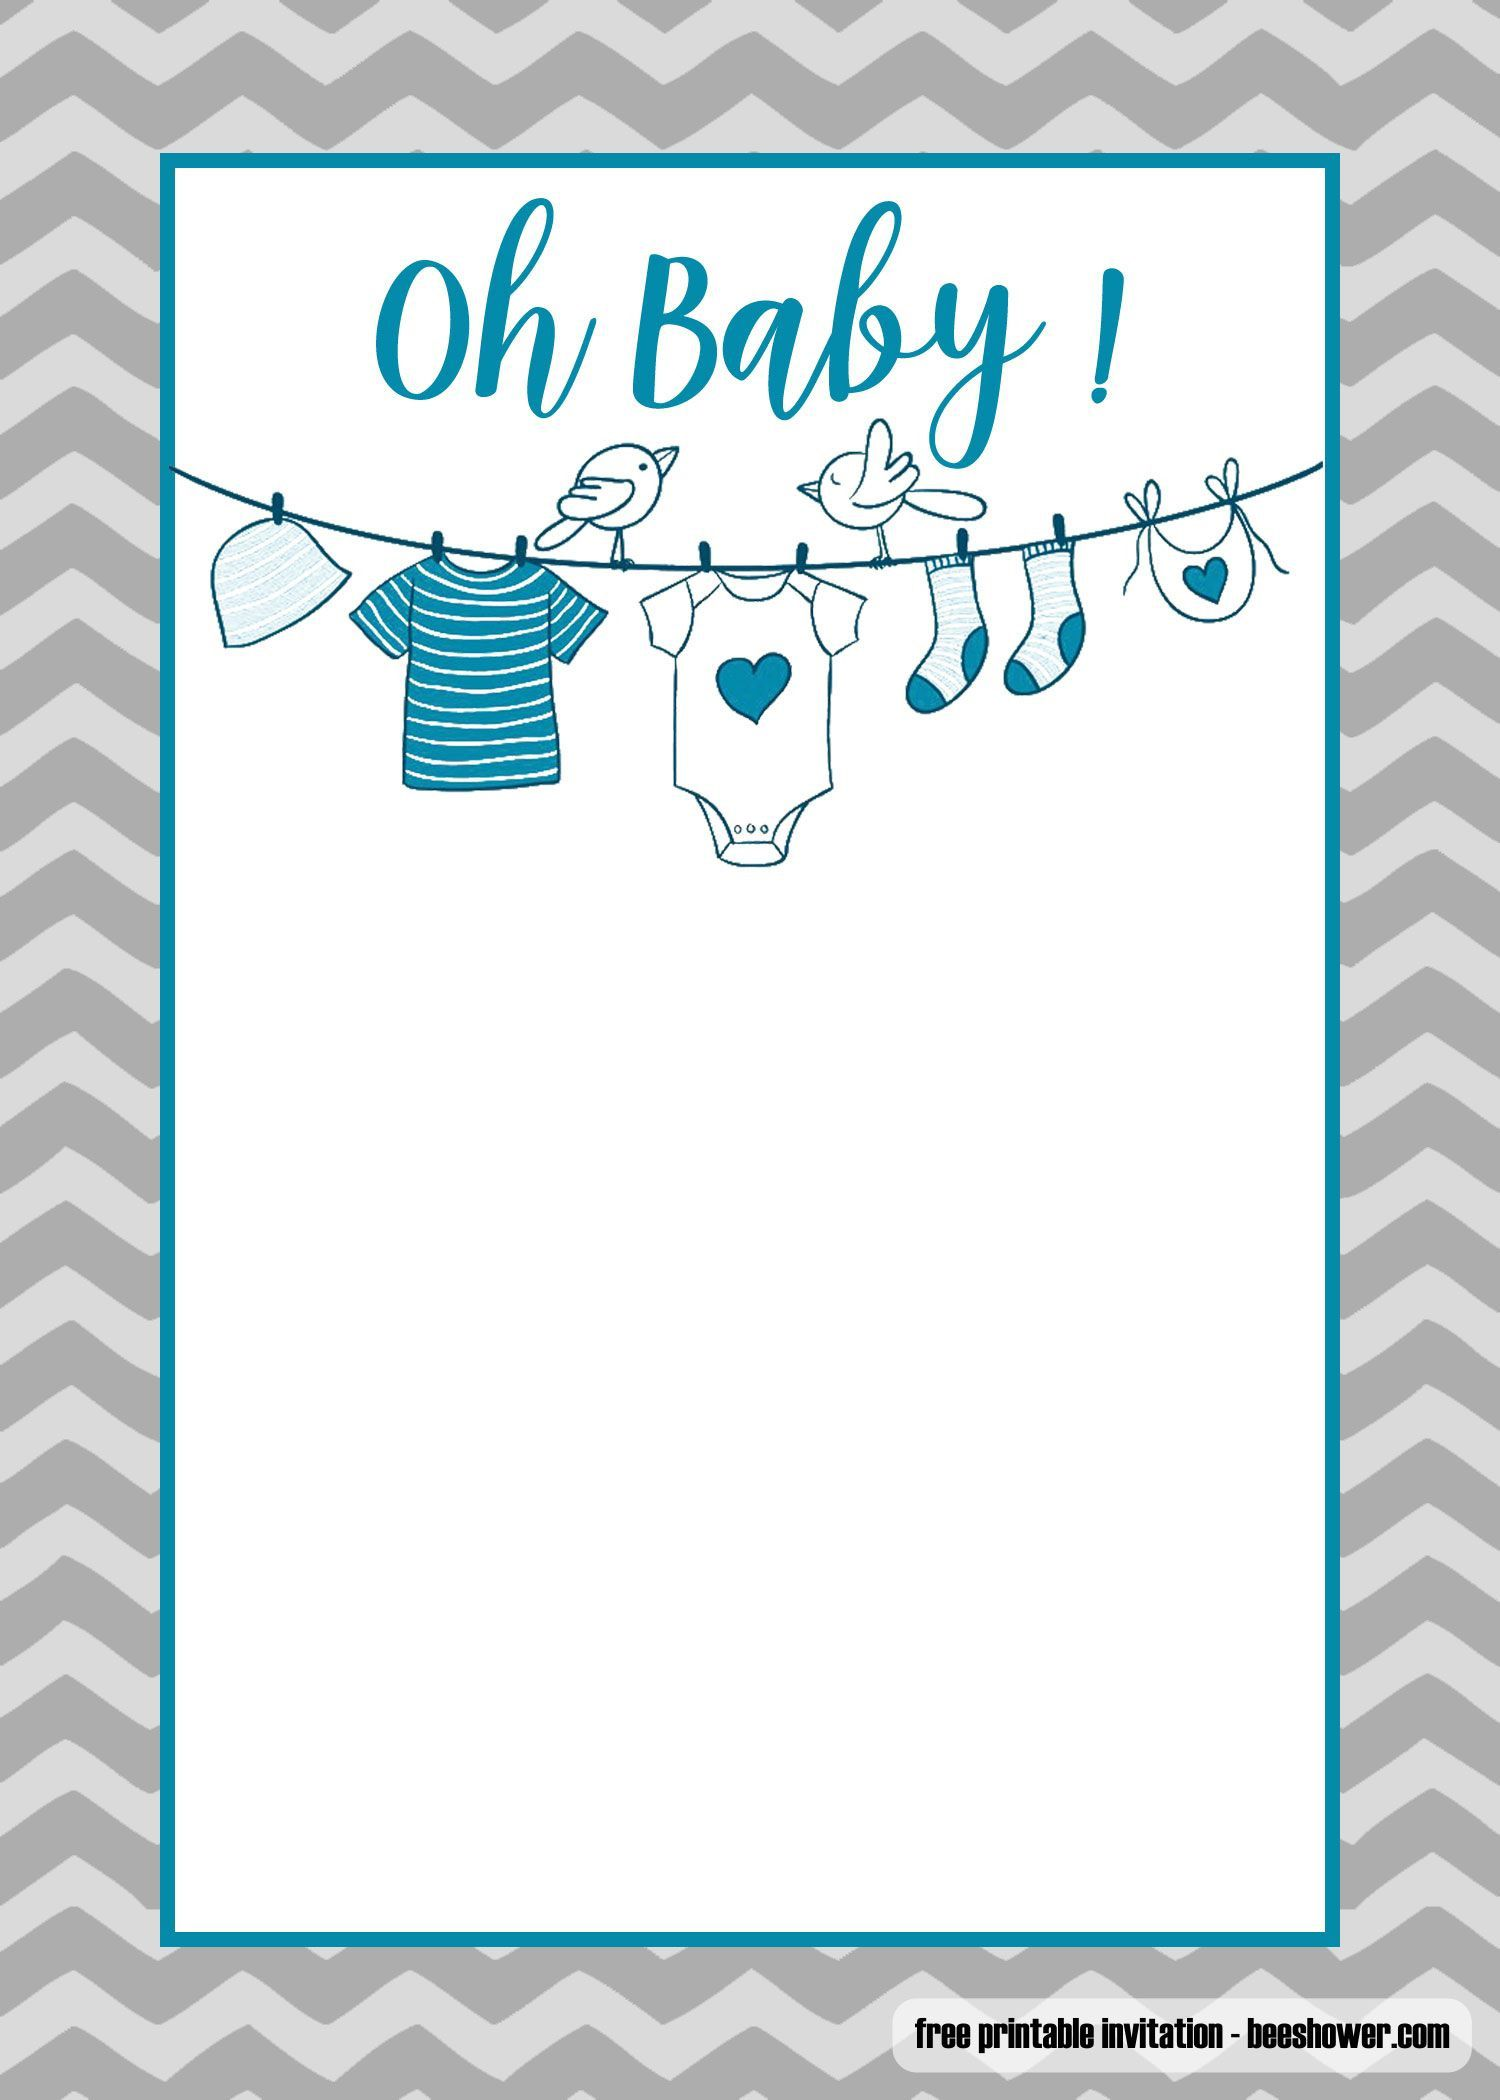 007 Formidable Baby Shower Card Template Free Download Highest Quality  Indian InvitationFull